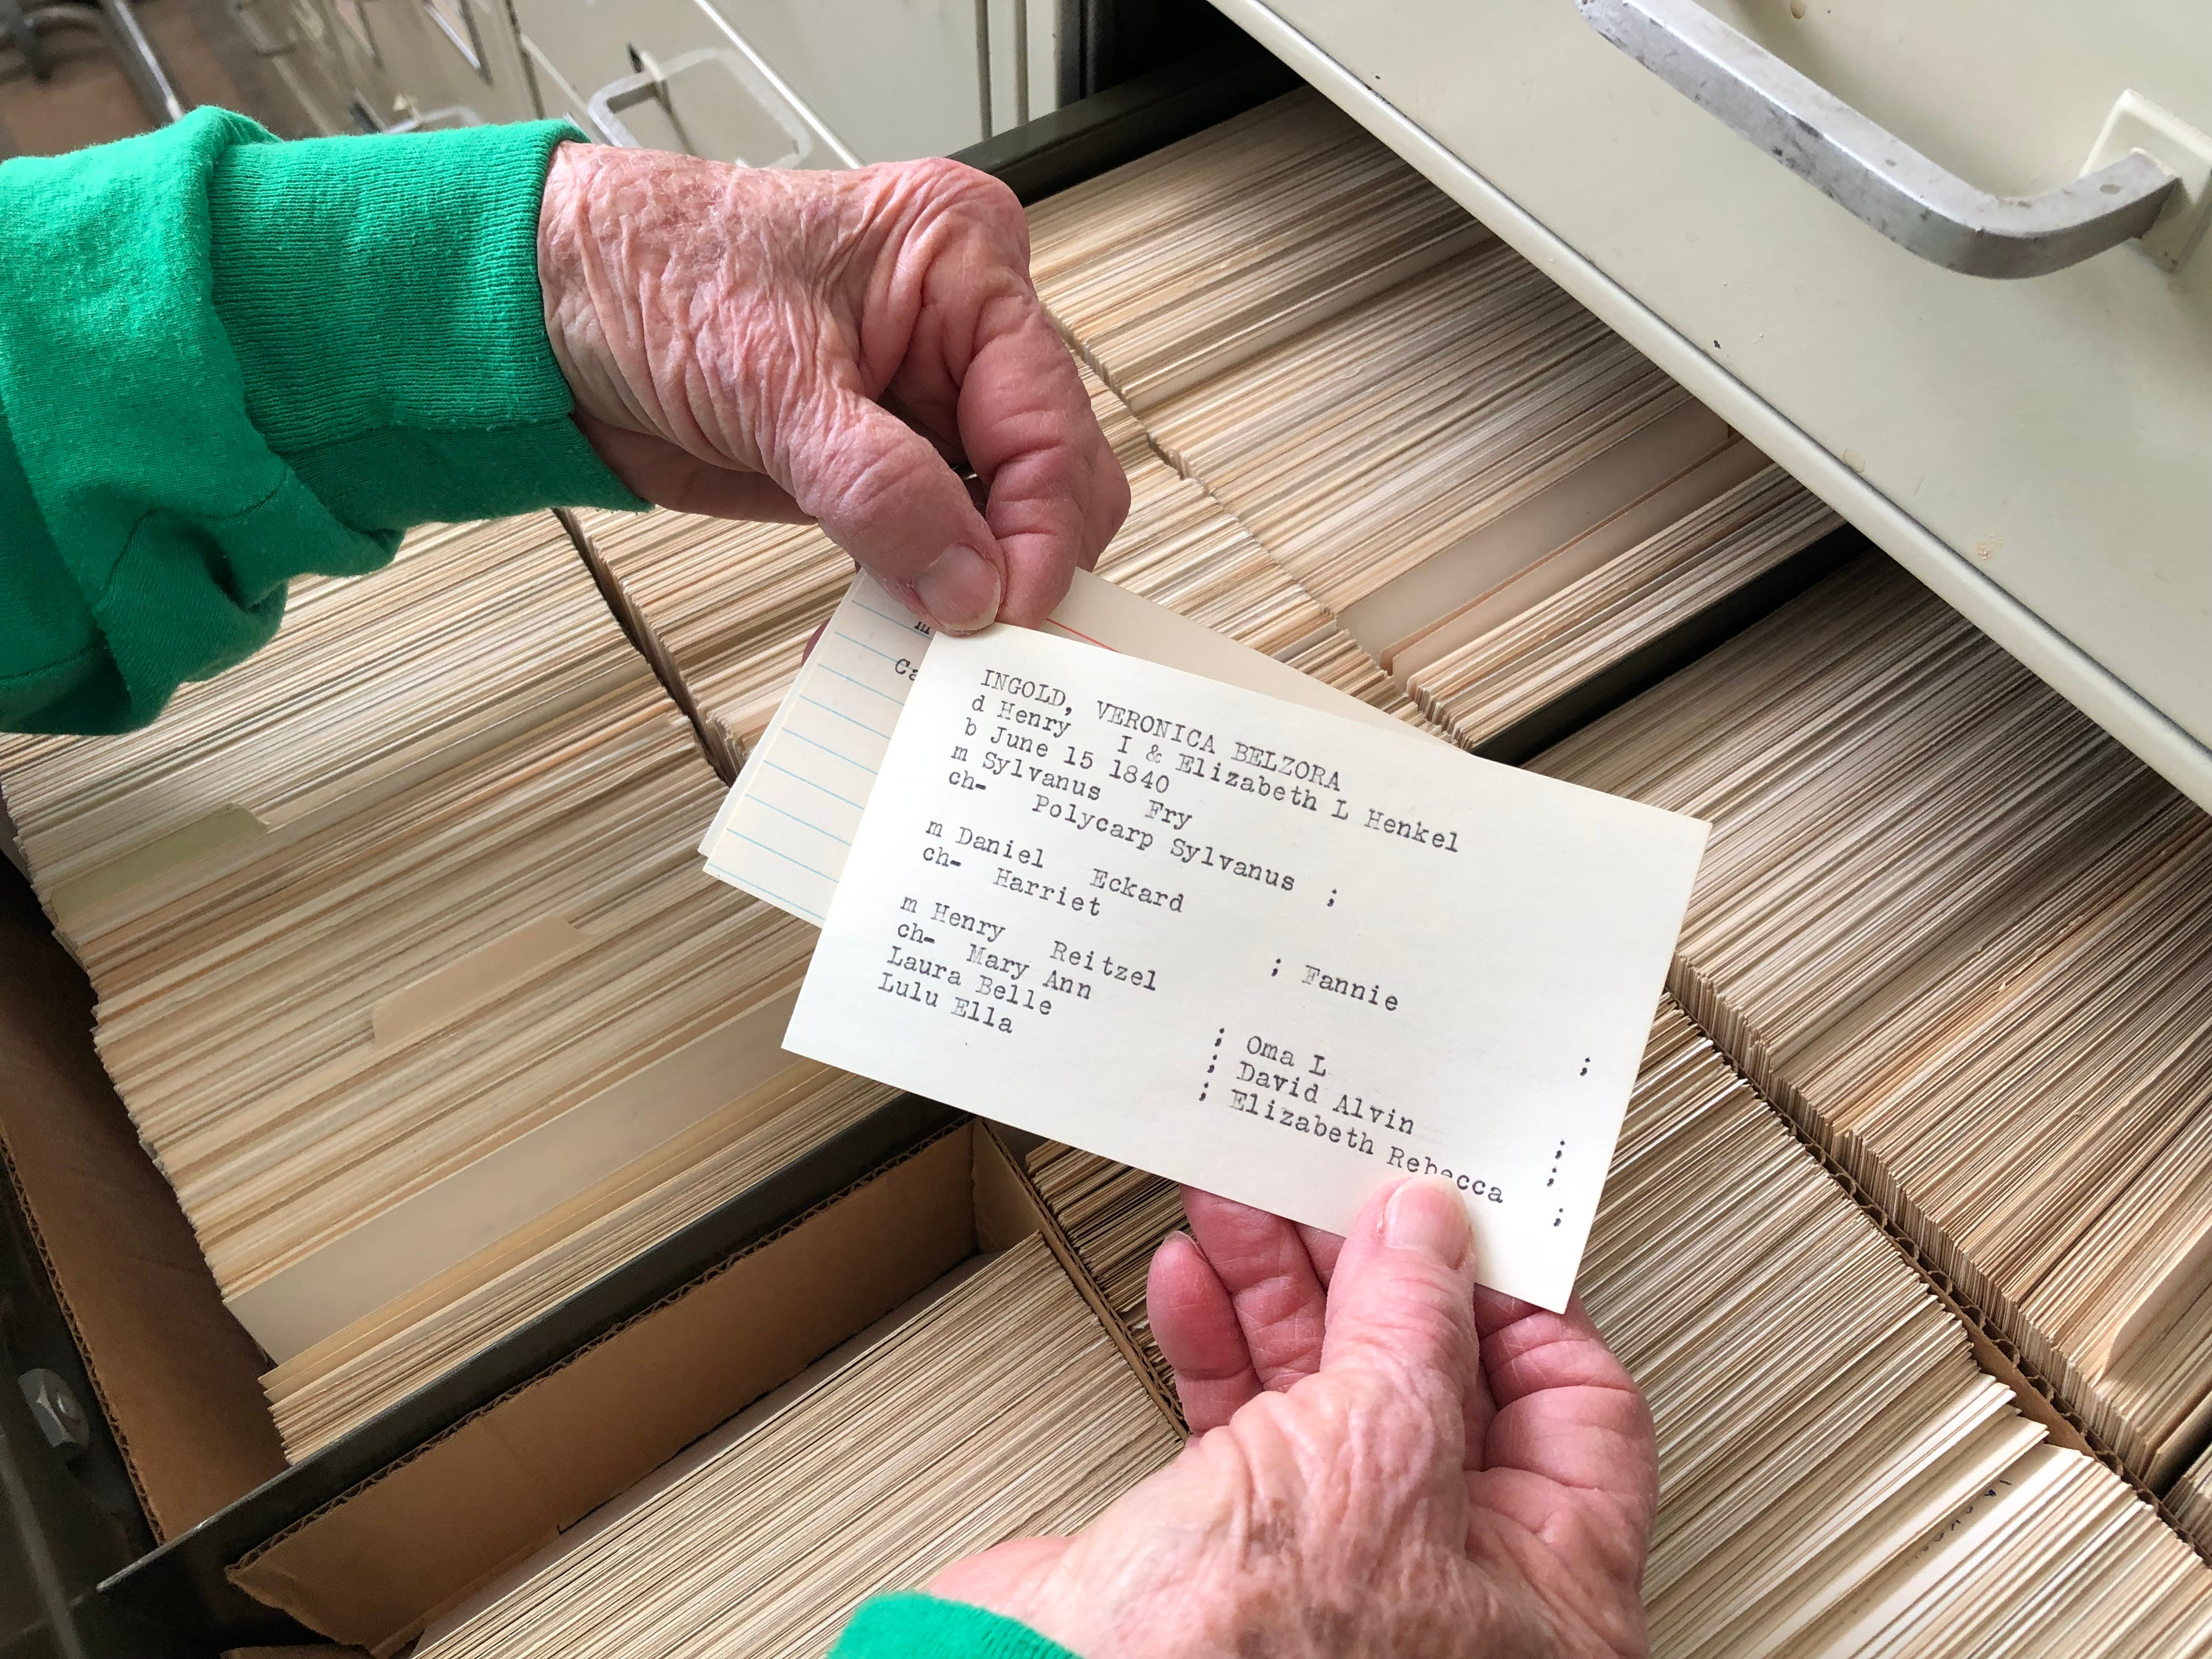 The George Heavilin Genealogical Card Collection includes birth, death and other information for the years 1972-1984.